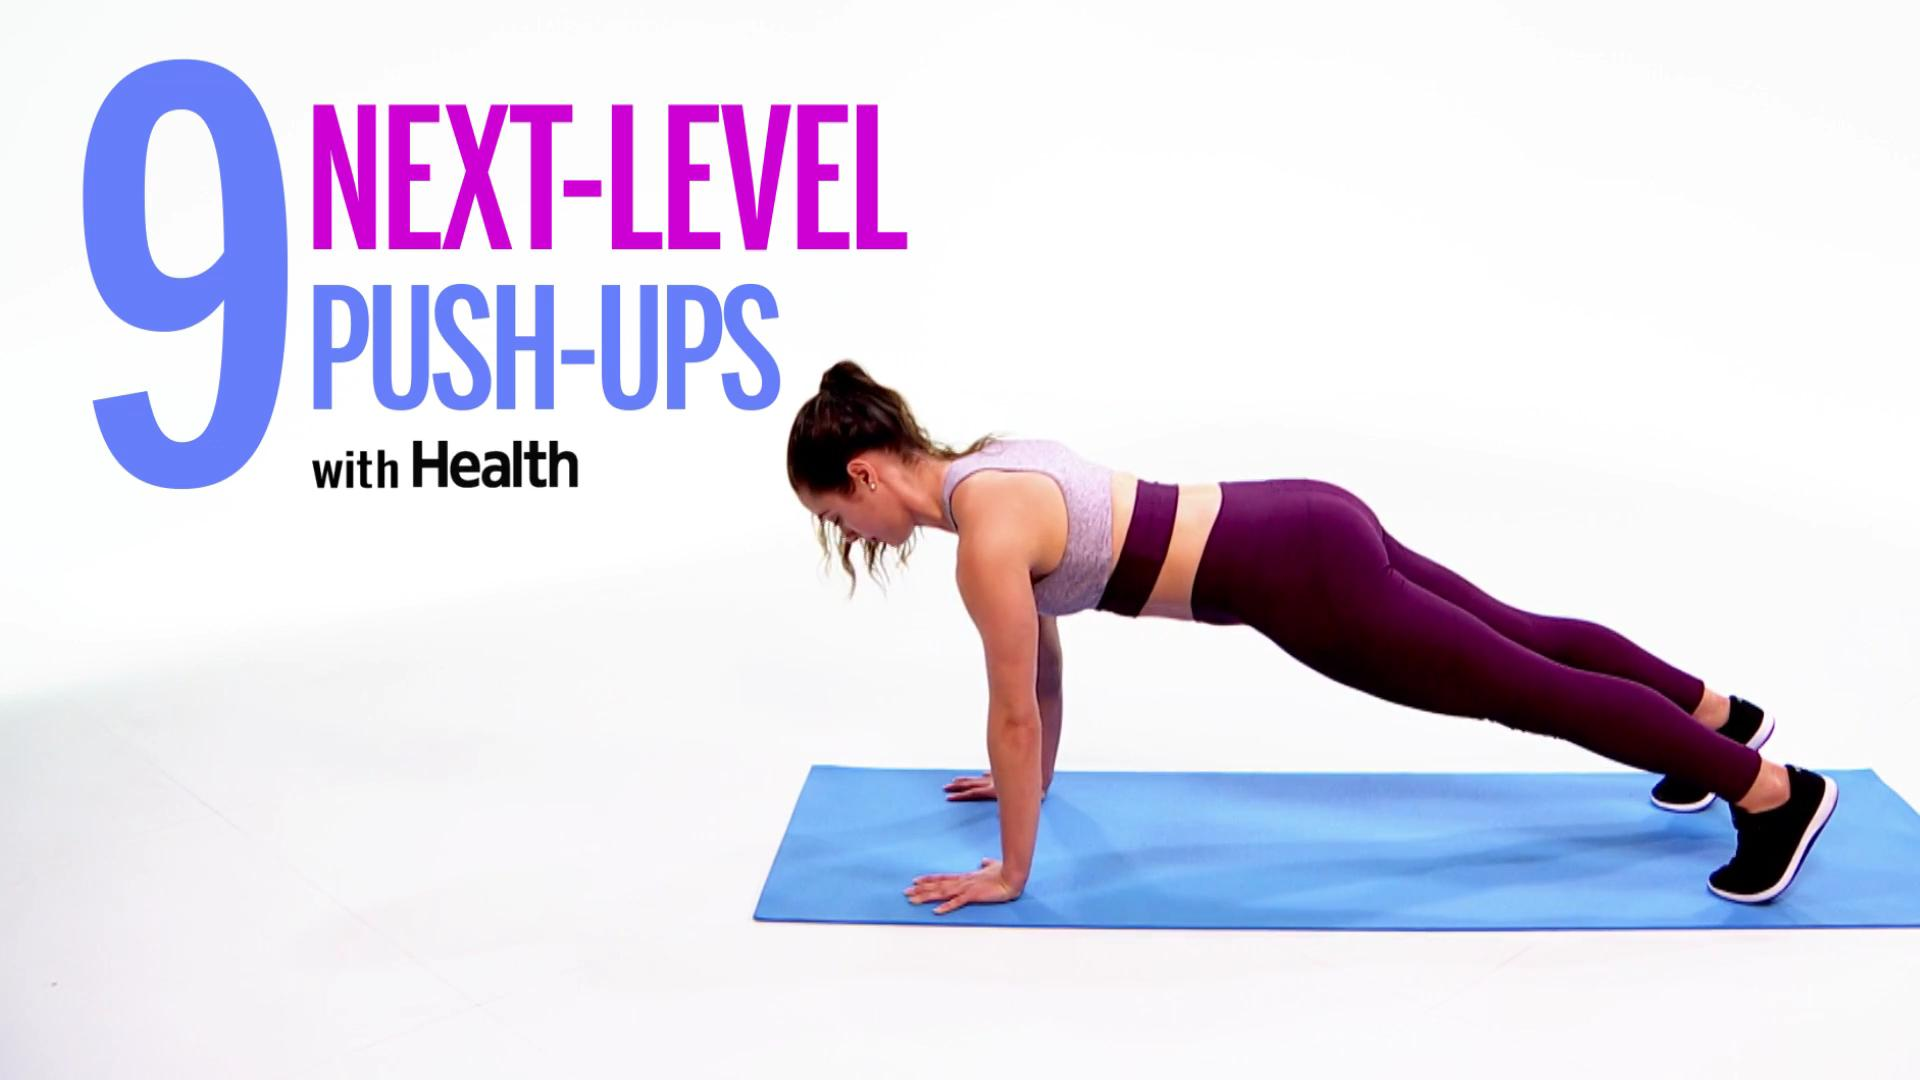 Next-Level Push-Ups - Health